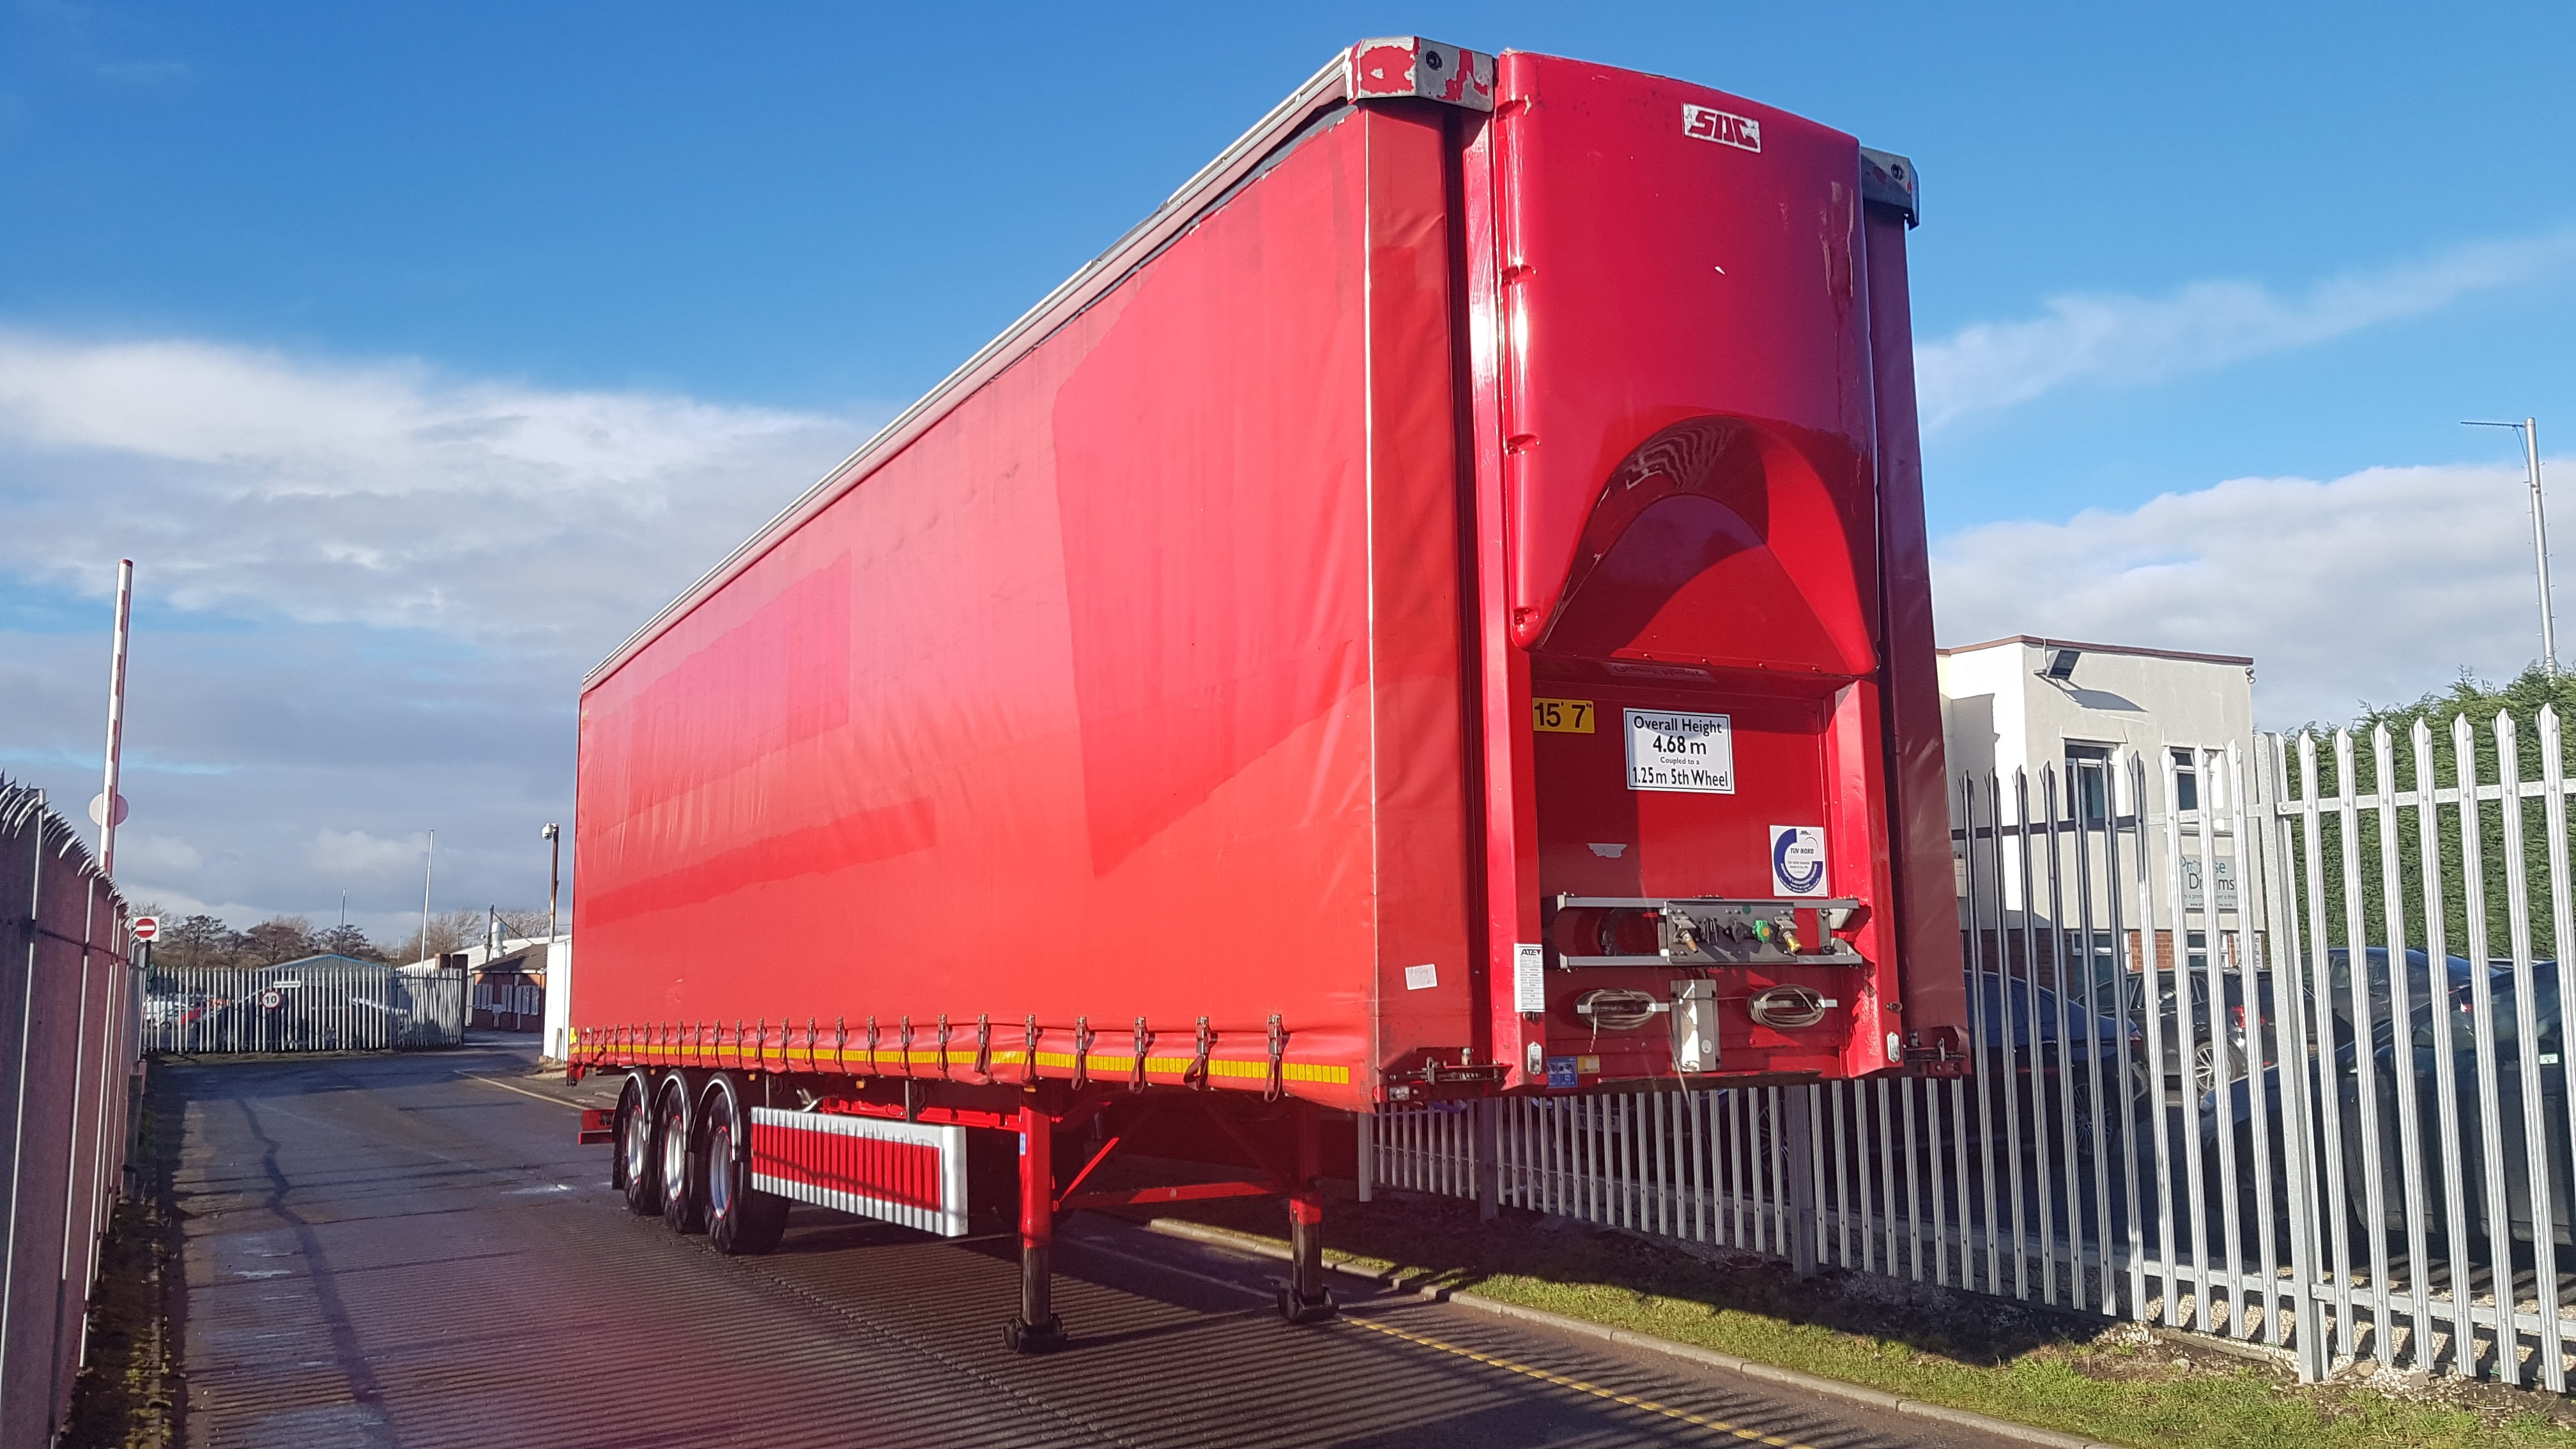 2016 SDC 4.68M ENXL Rated Curtainsider. SAF drum brake axles, 3.19m internal aperture, 3 sliding side posts per side, ENXL rated body, flush rear doors, raise lower valve facility. MOT July 2019.